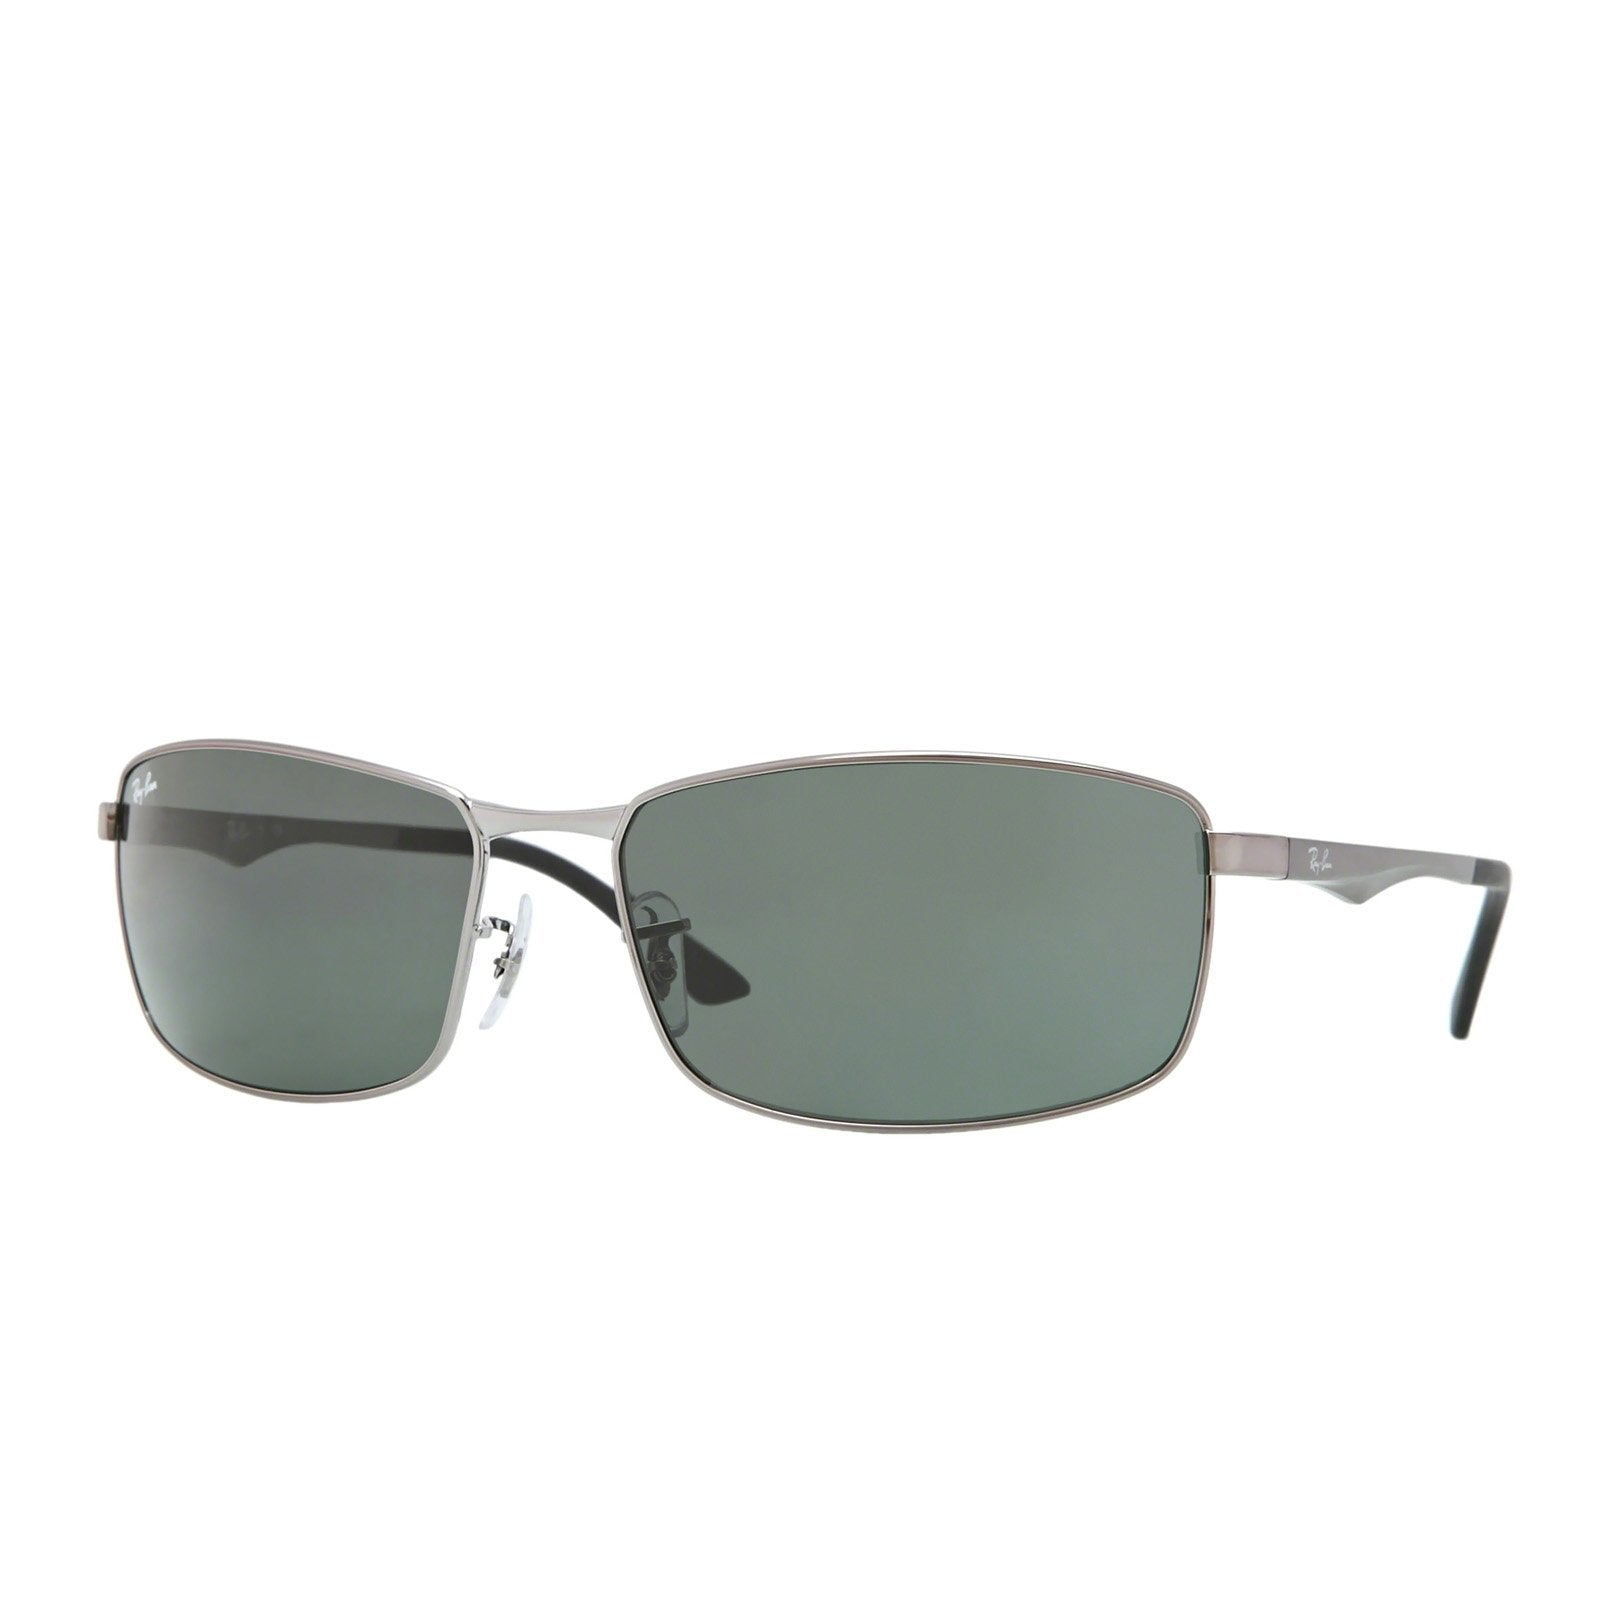 Ray-Ban RB3498 004/71 Sunglasses